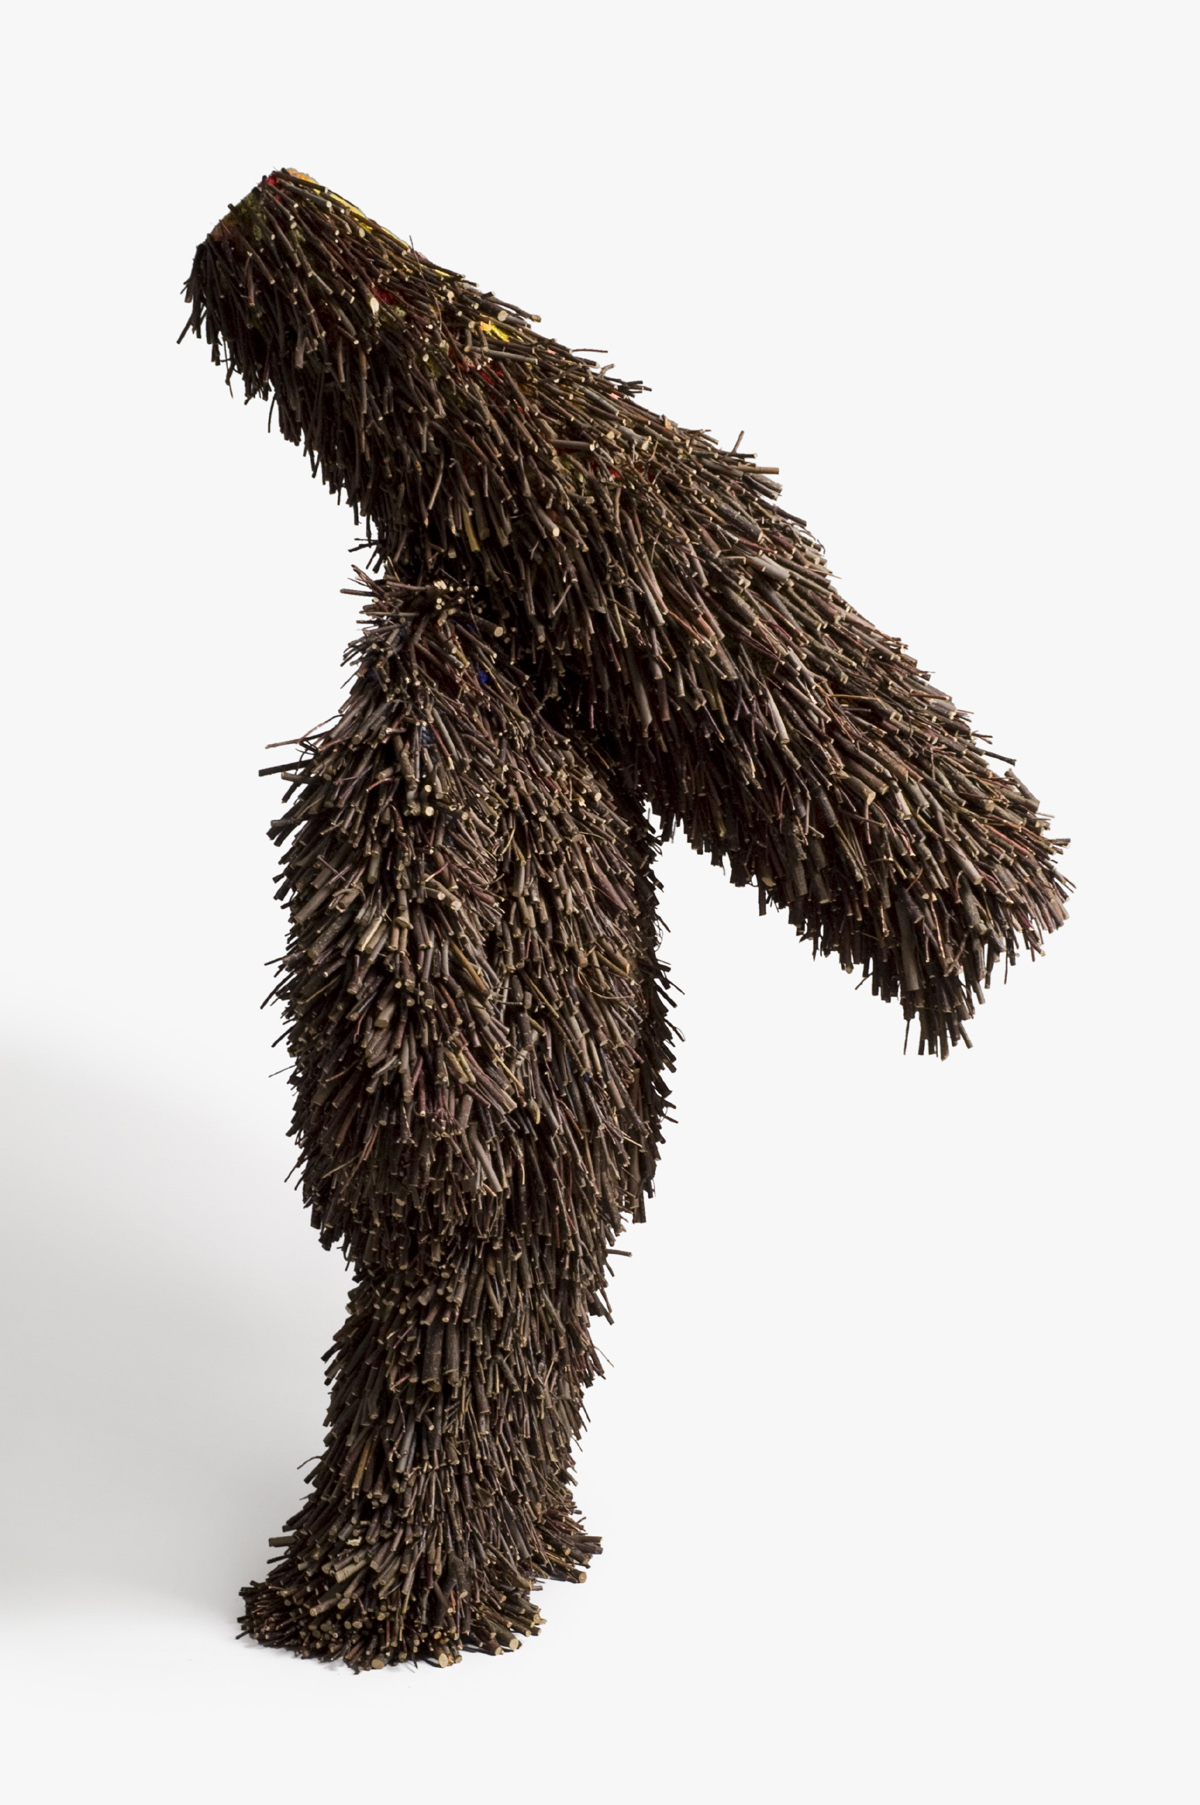 A photograph of one of Nick Cave's Sound Suites made of sticks